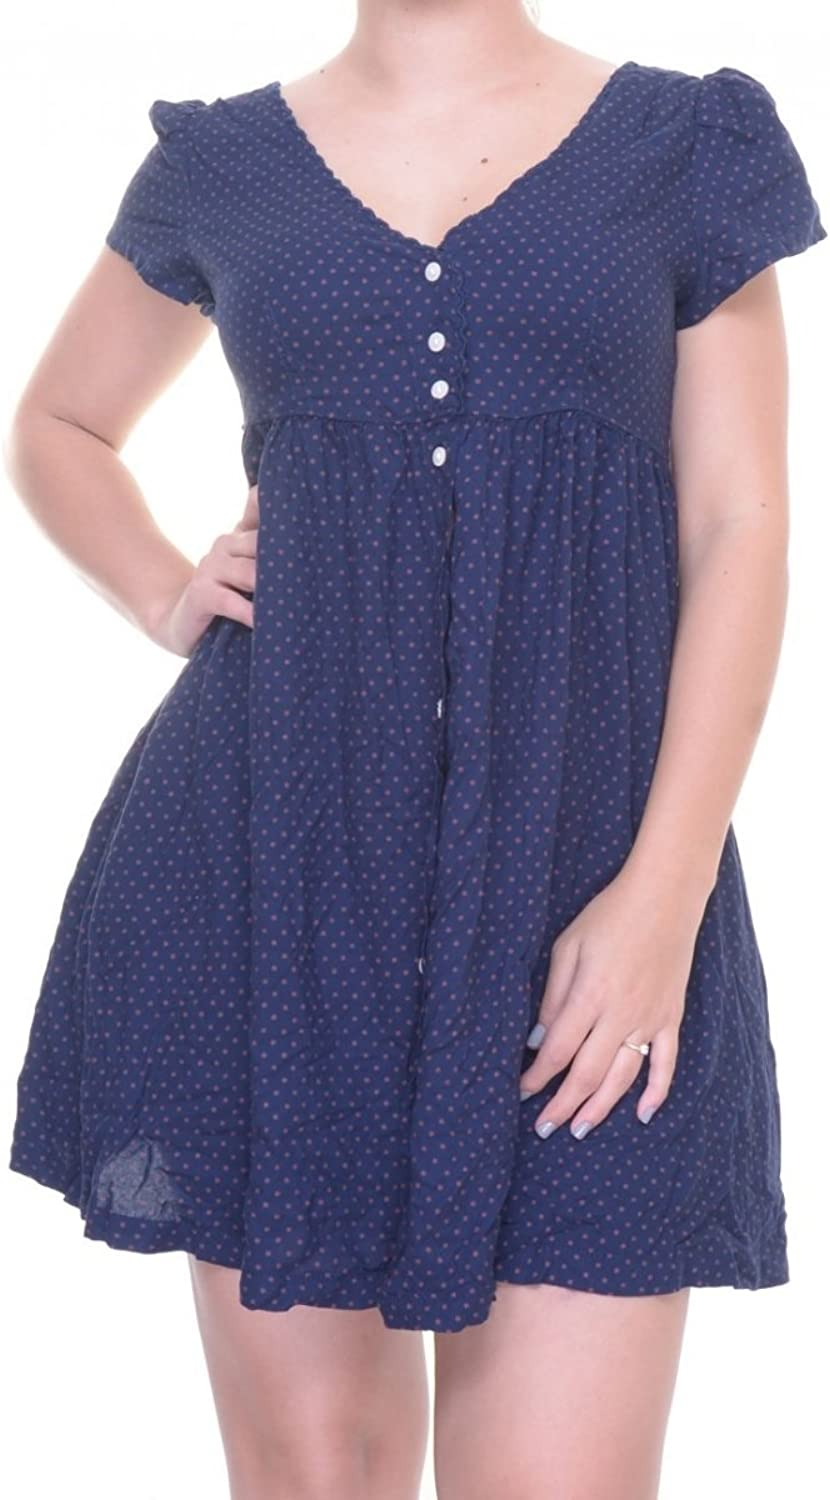 Denim & Supply Ralph Lauren Women's Star Shirt Dress bluee XS